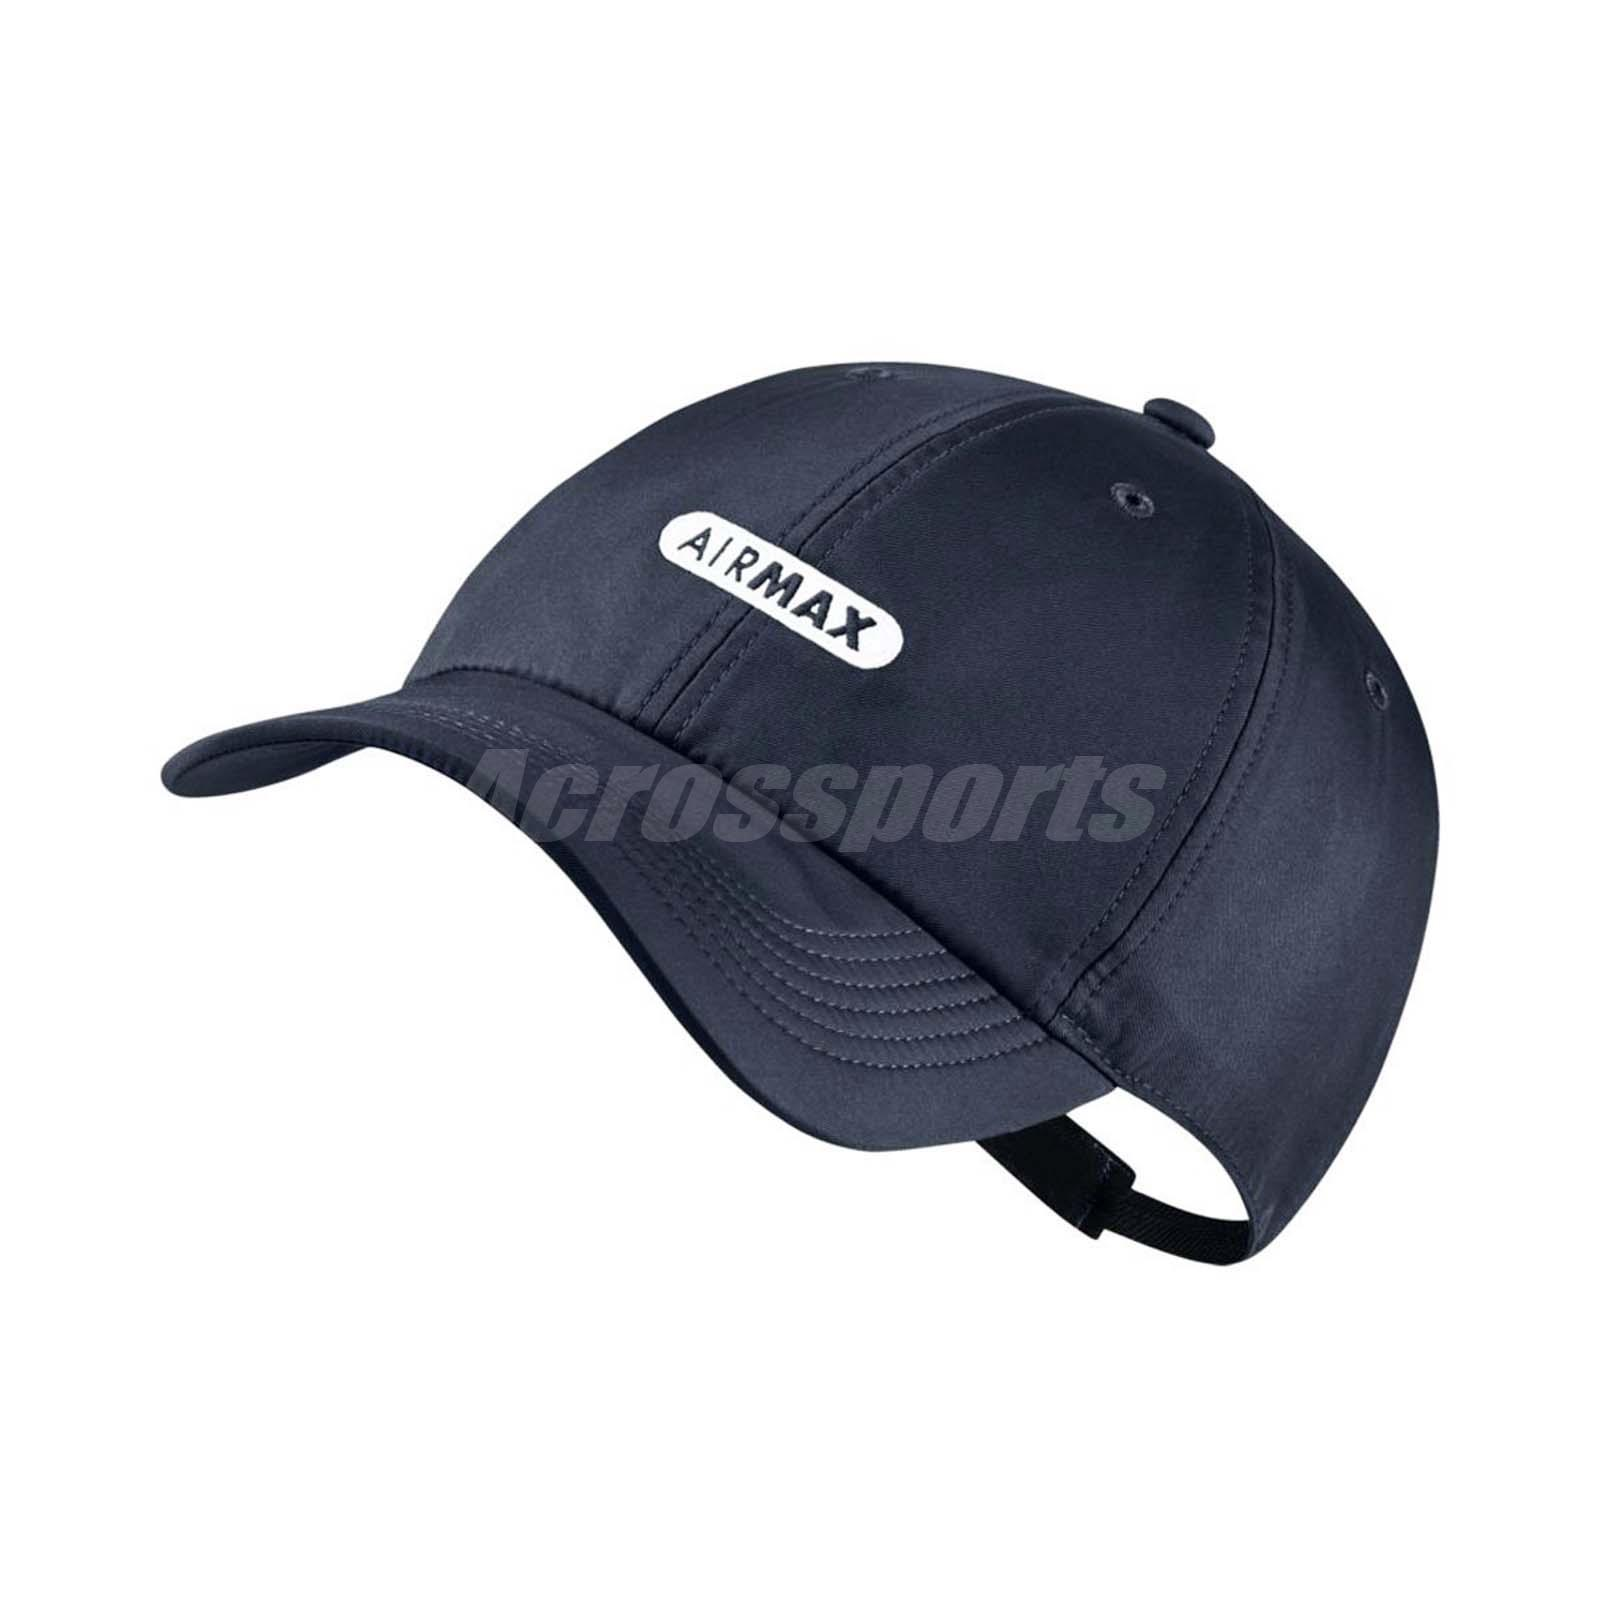 6d0bcac9a54e4 Details about Nike Unisex Aerobill H86 Cap Air Max Lightweight Breathable  Blue 891285-451